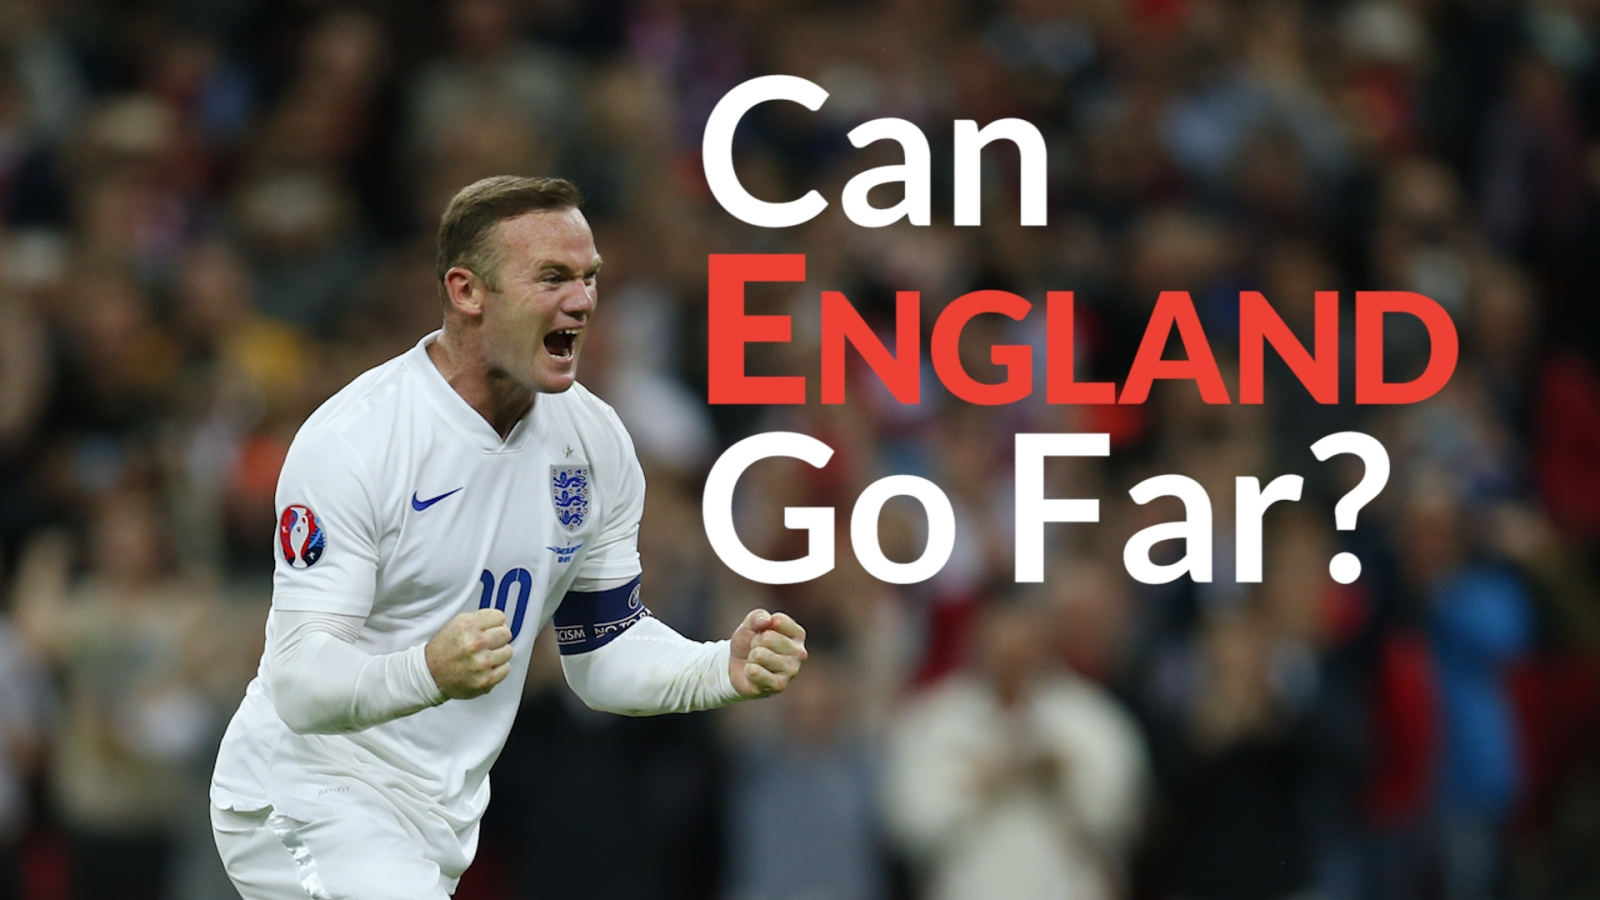 Euro 2016: Can England go all the way in France this summer?